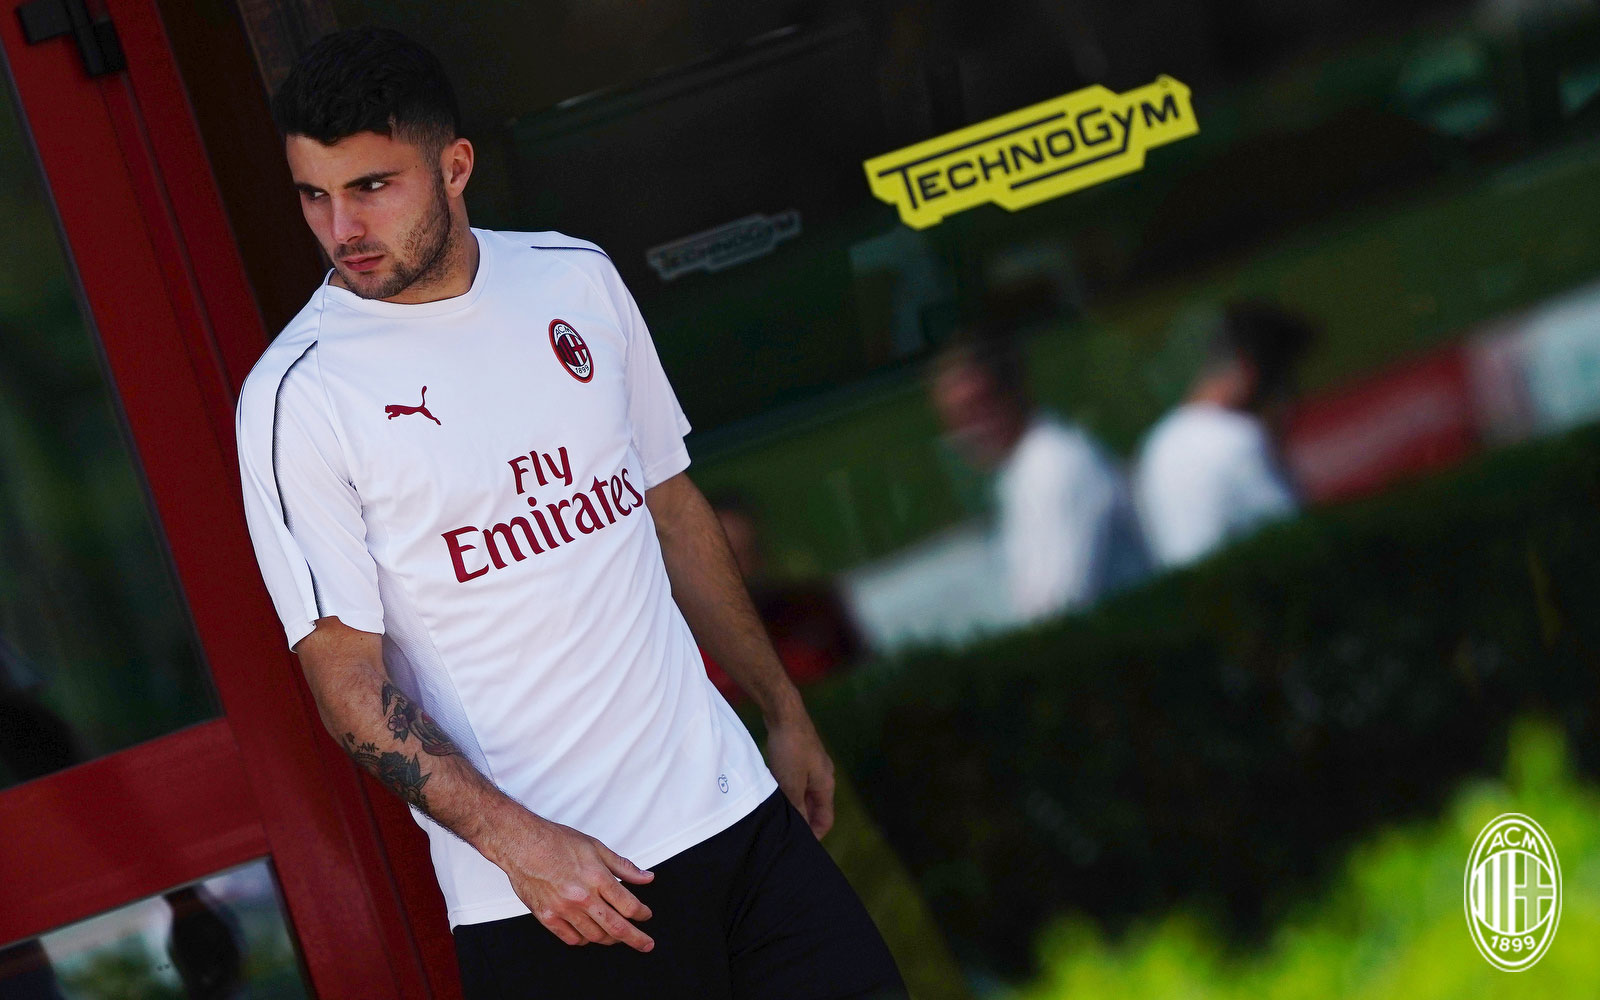 Patrick Cutrone during training at Milanello. (@acmilan.com)